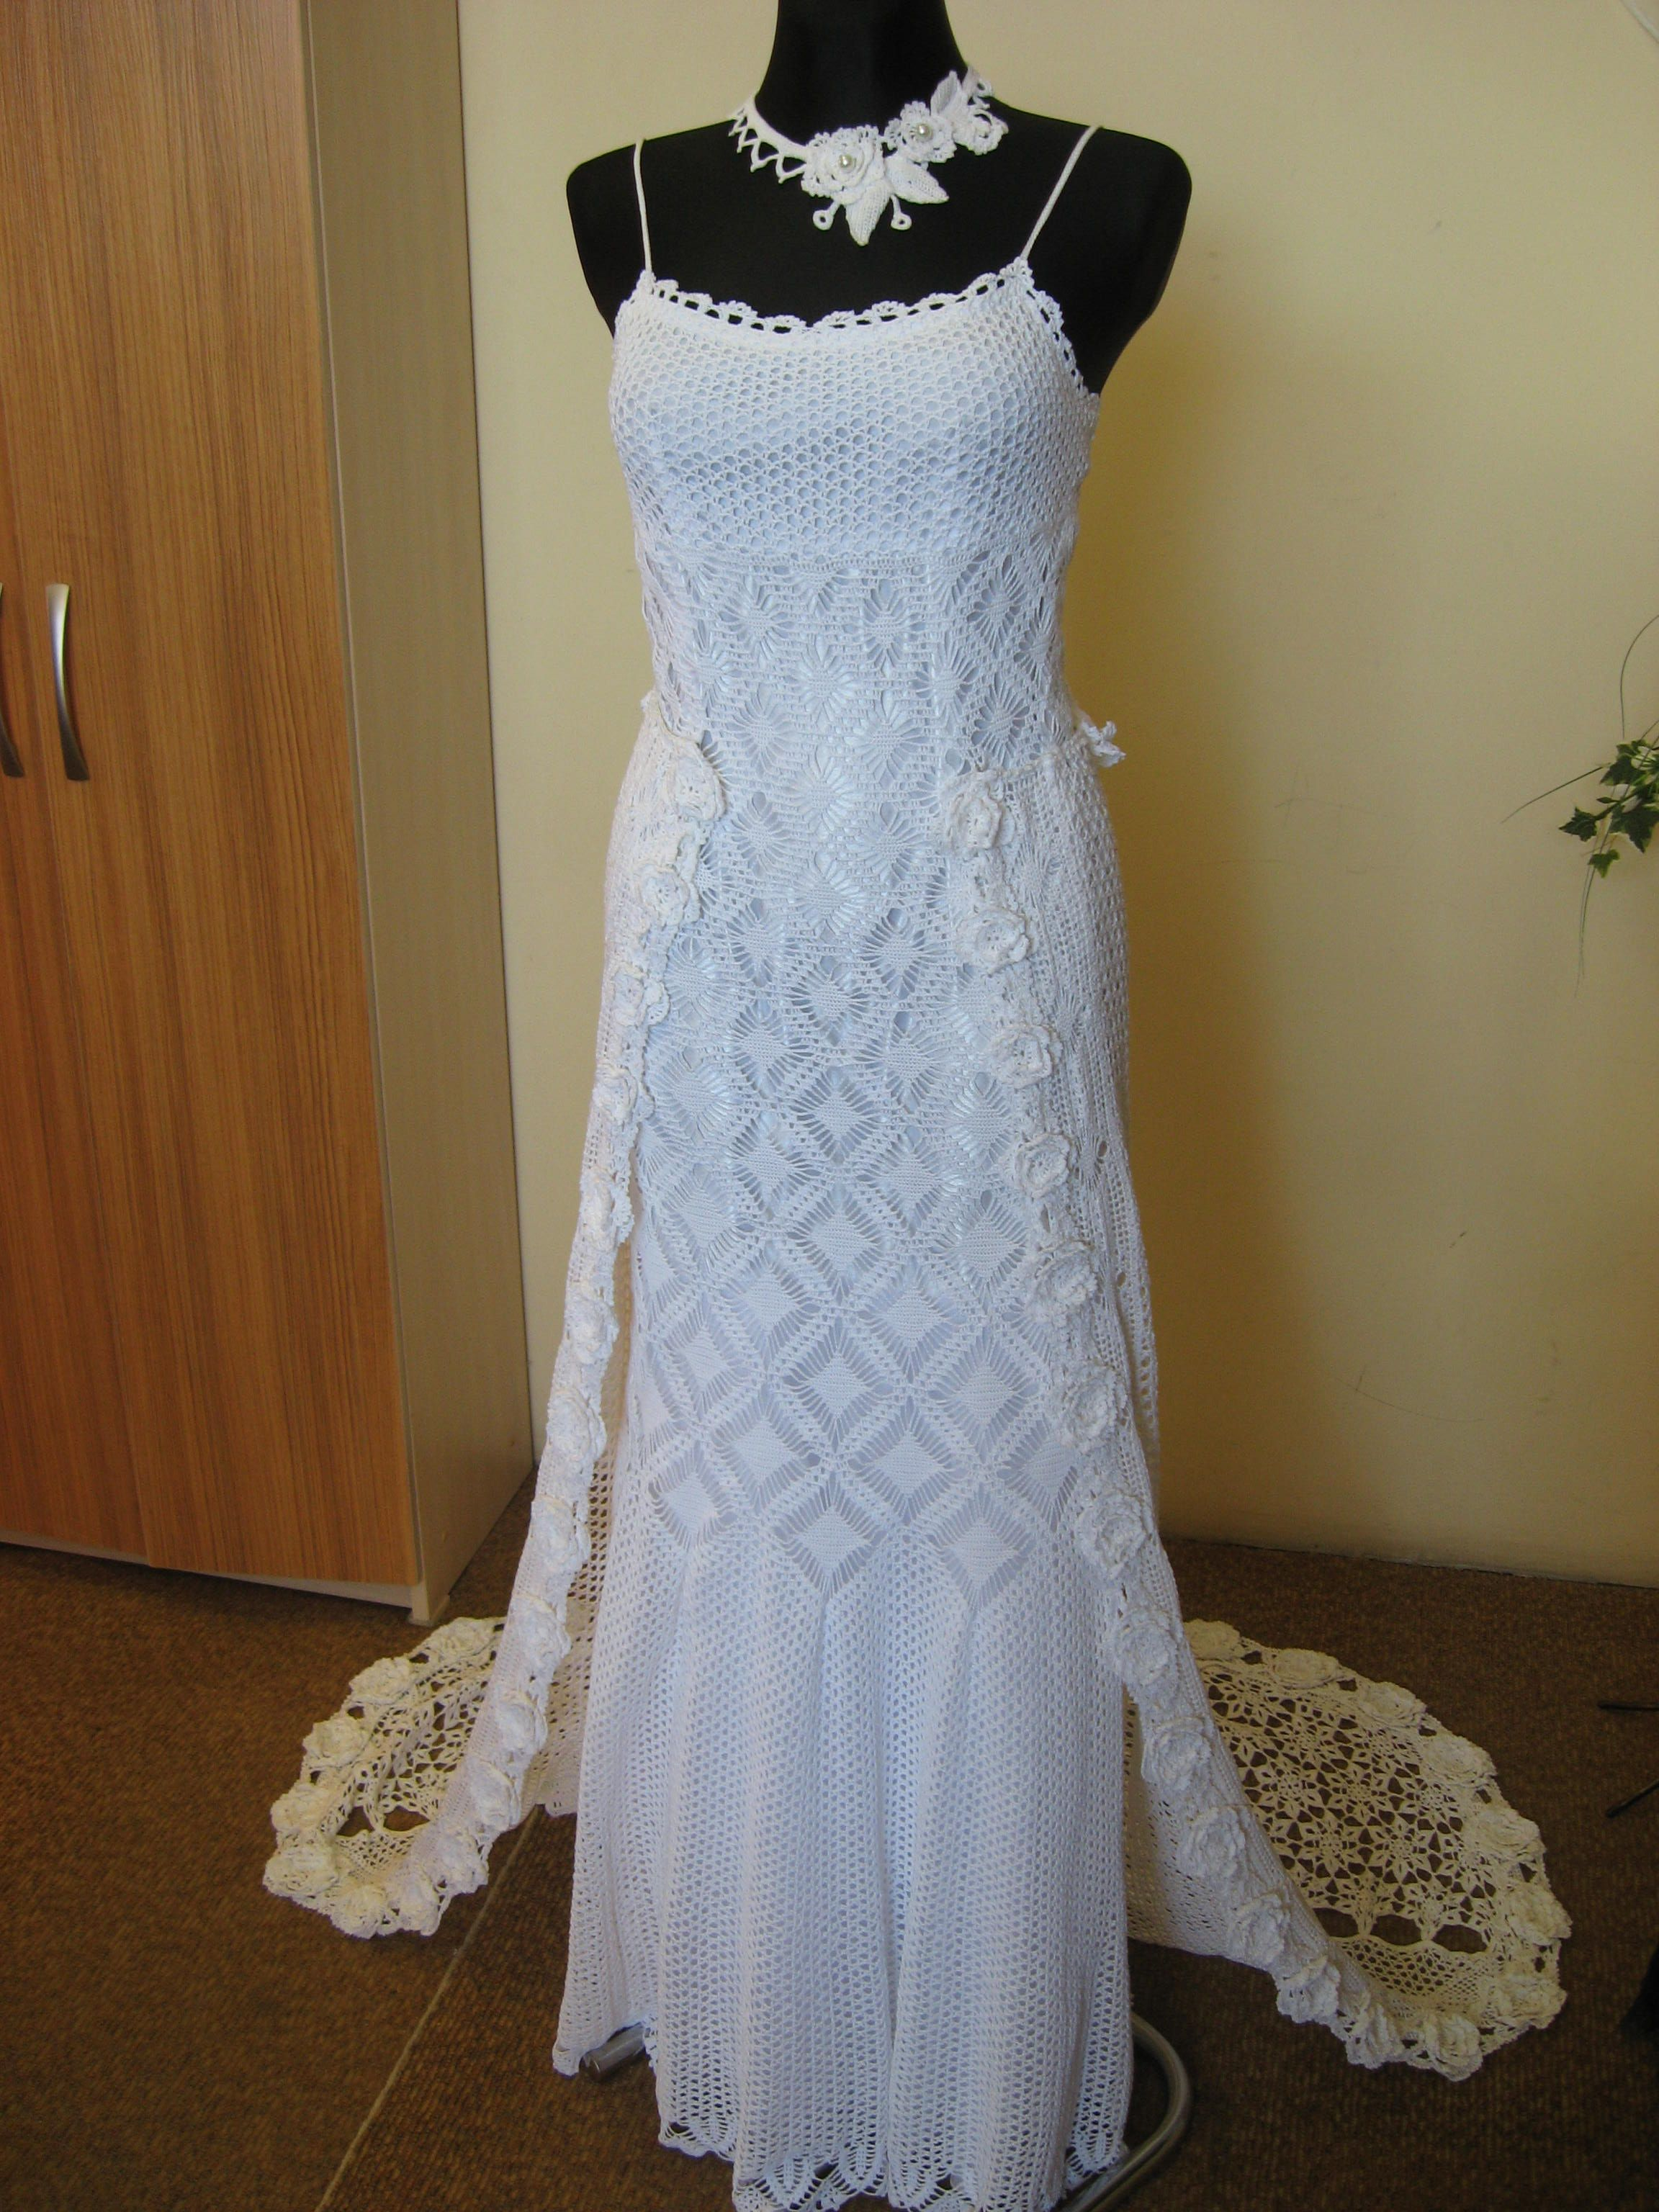 Crocheted Wedding Dresses Crochet Wedding Dress Pattern Crochet Wedding Dresses Crochet Dress